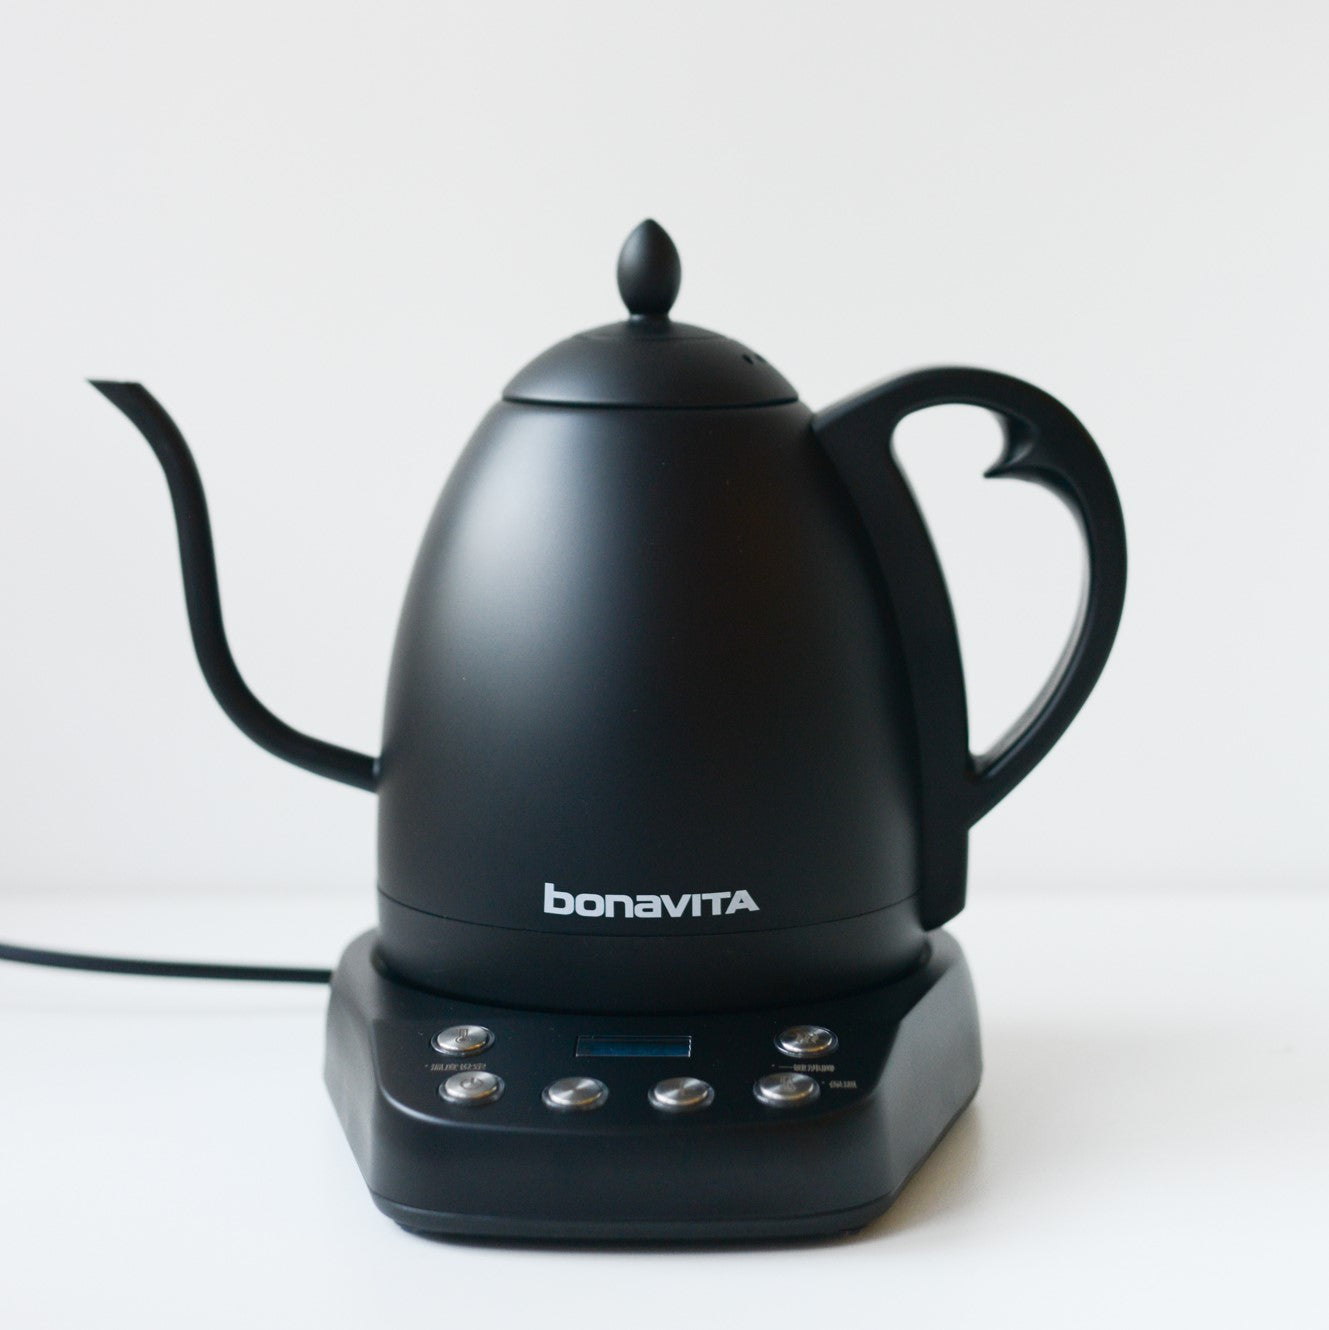 Bonavita Interurban 1.0L Stainless Steel Variable Temperature Kettle